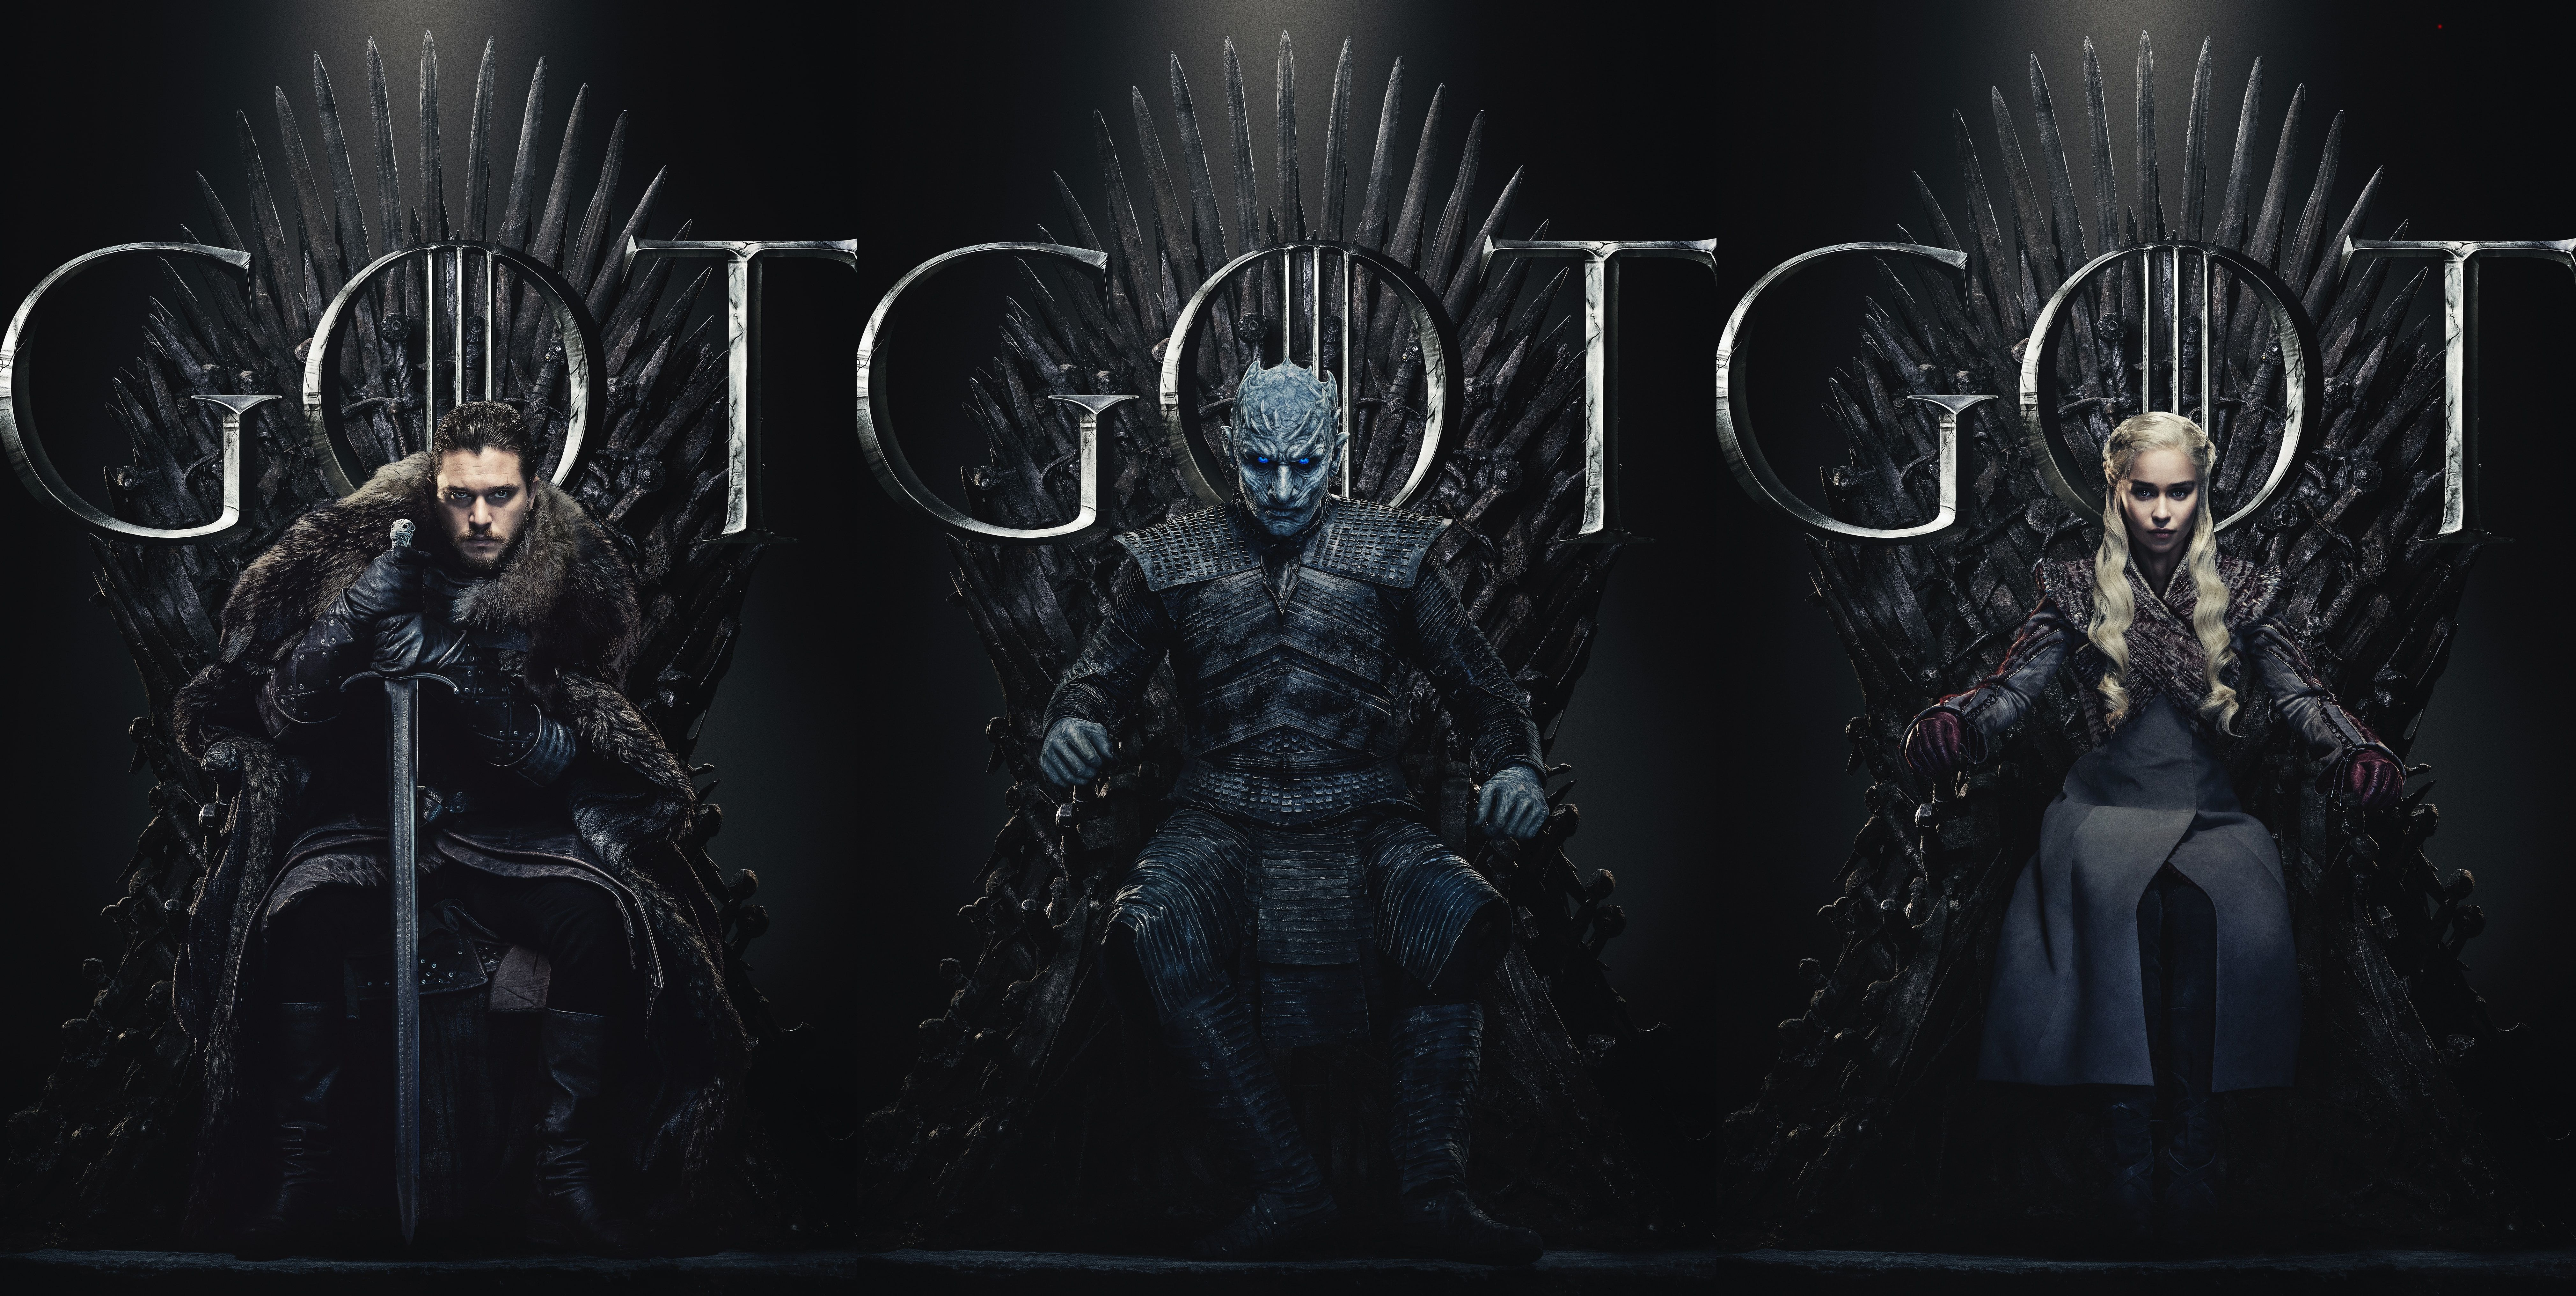 Game Of Thrones Season 8 Wallpapers Top Free Game Of Thrones